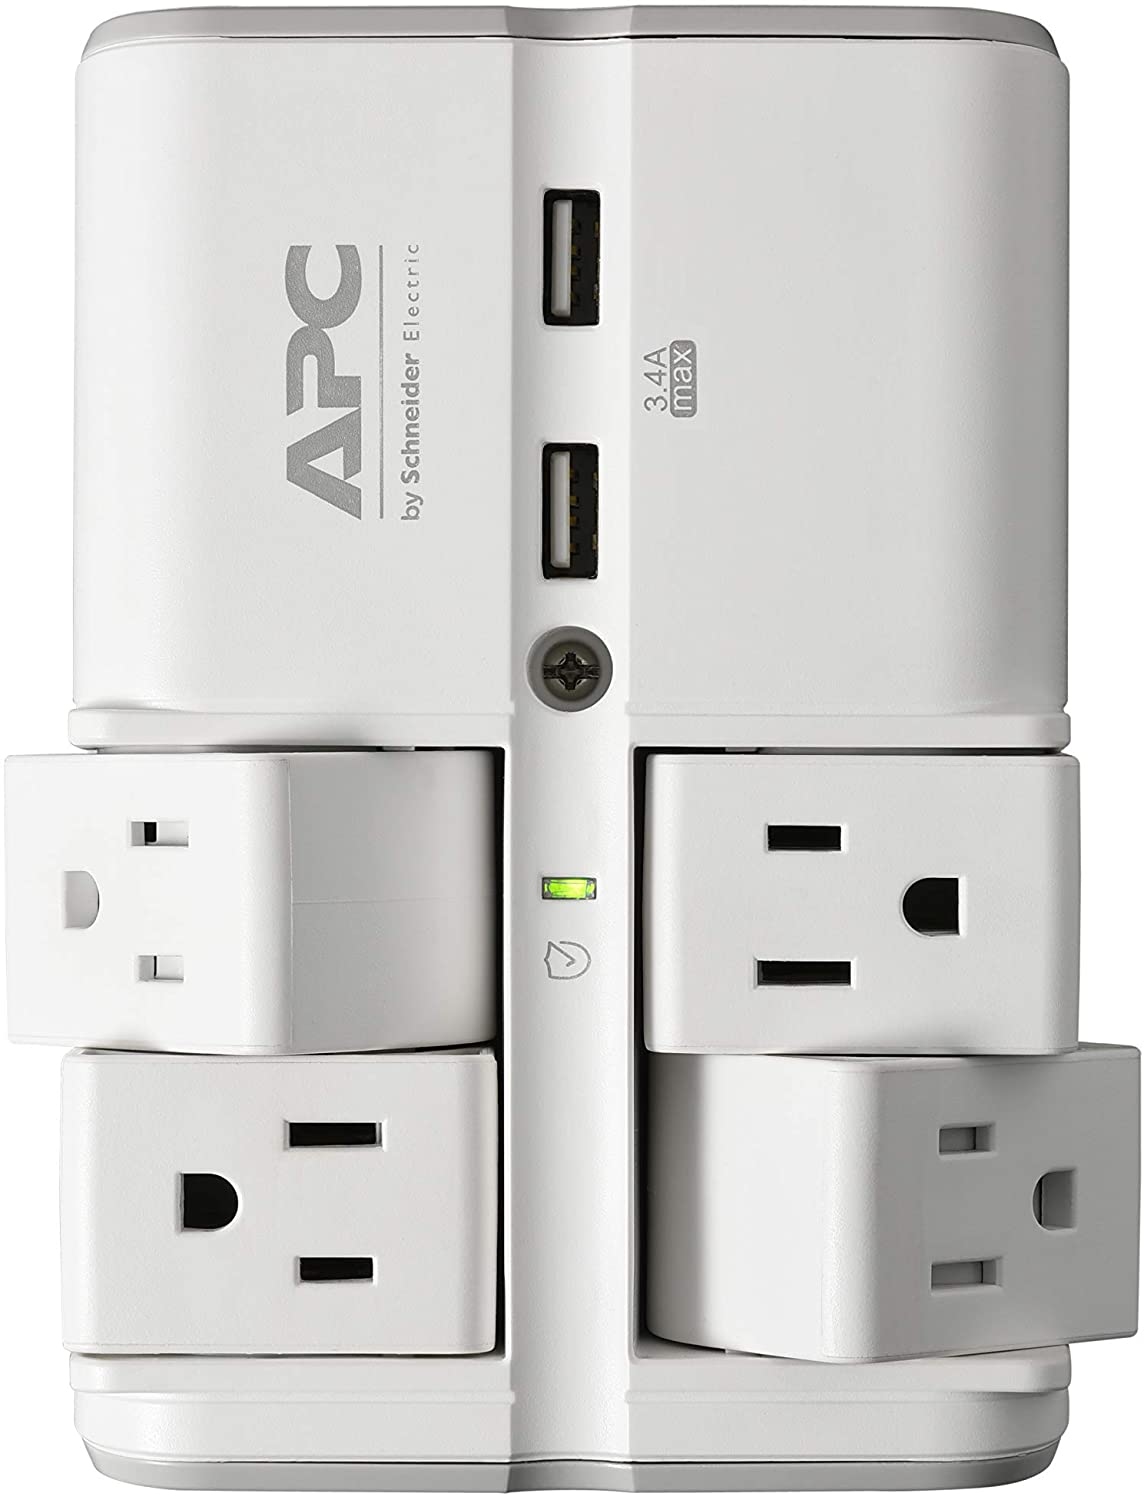 APC PE4WRU3 Wall Outlet Surge Protector with USB Ports